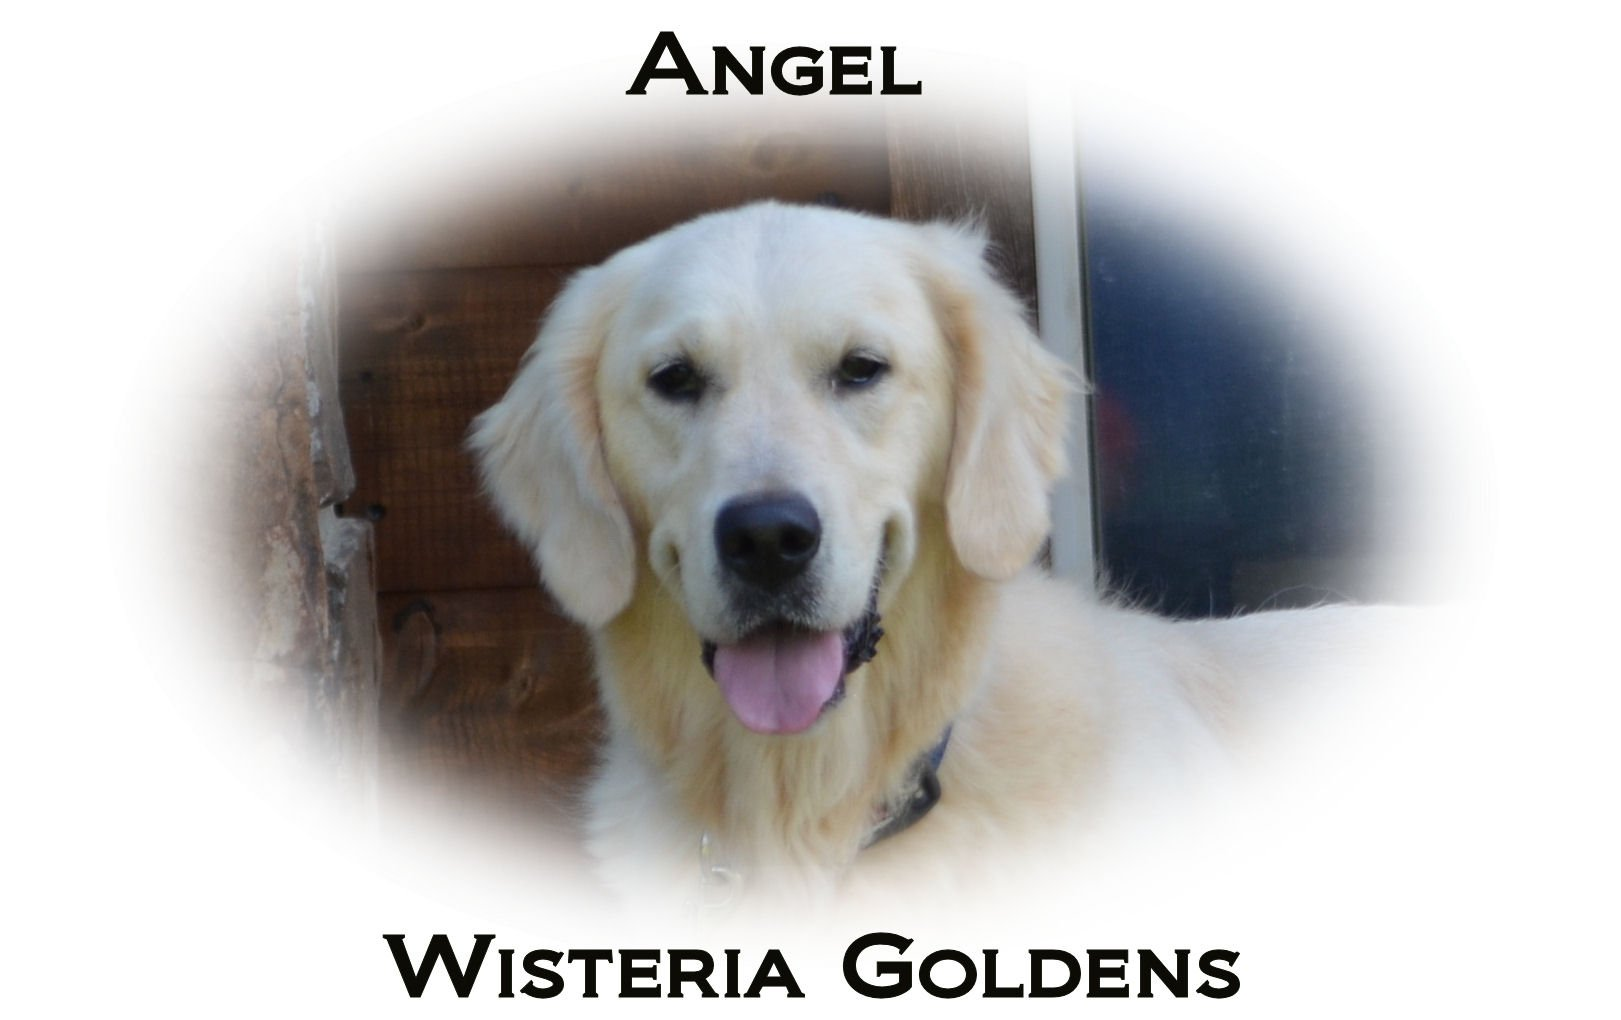 Angel-HS-faith-full-english-creme-golden-retriever-wisteria-goldens